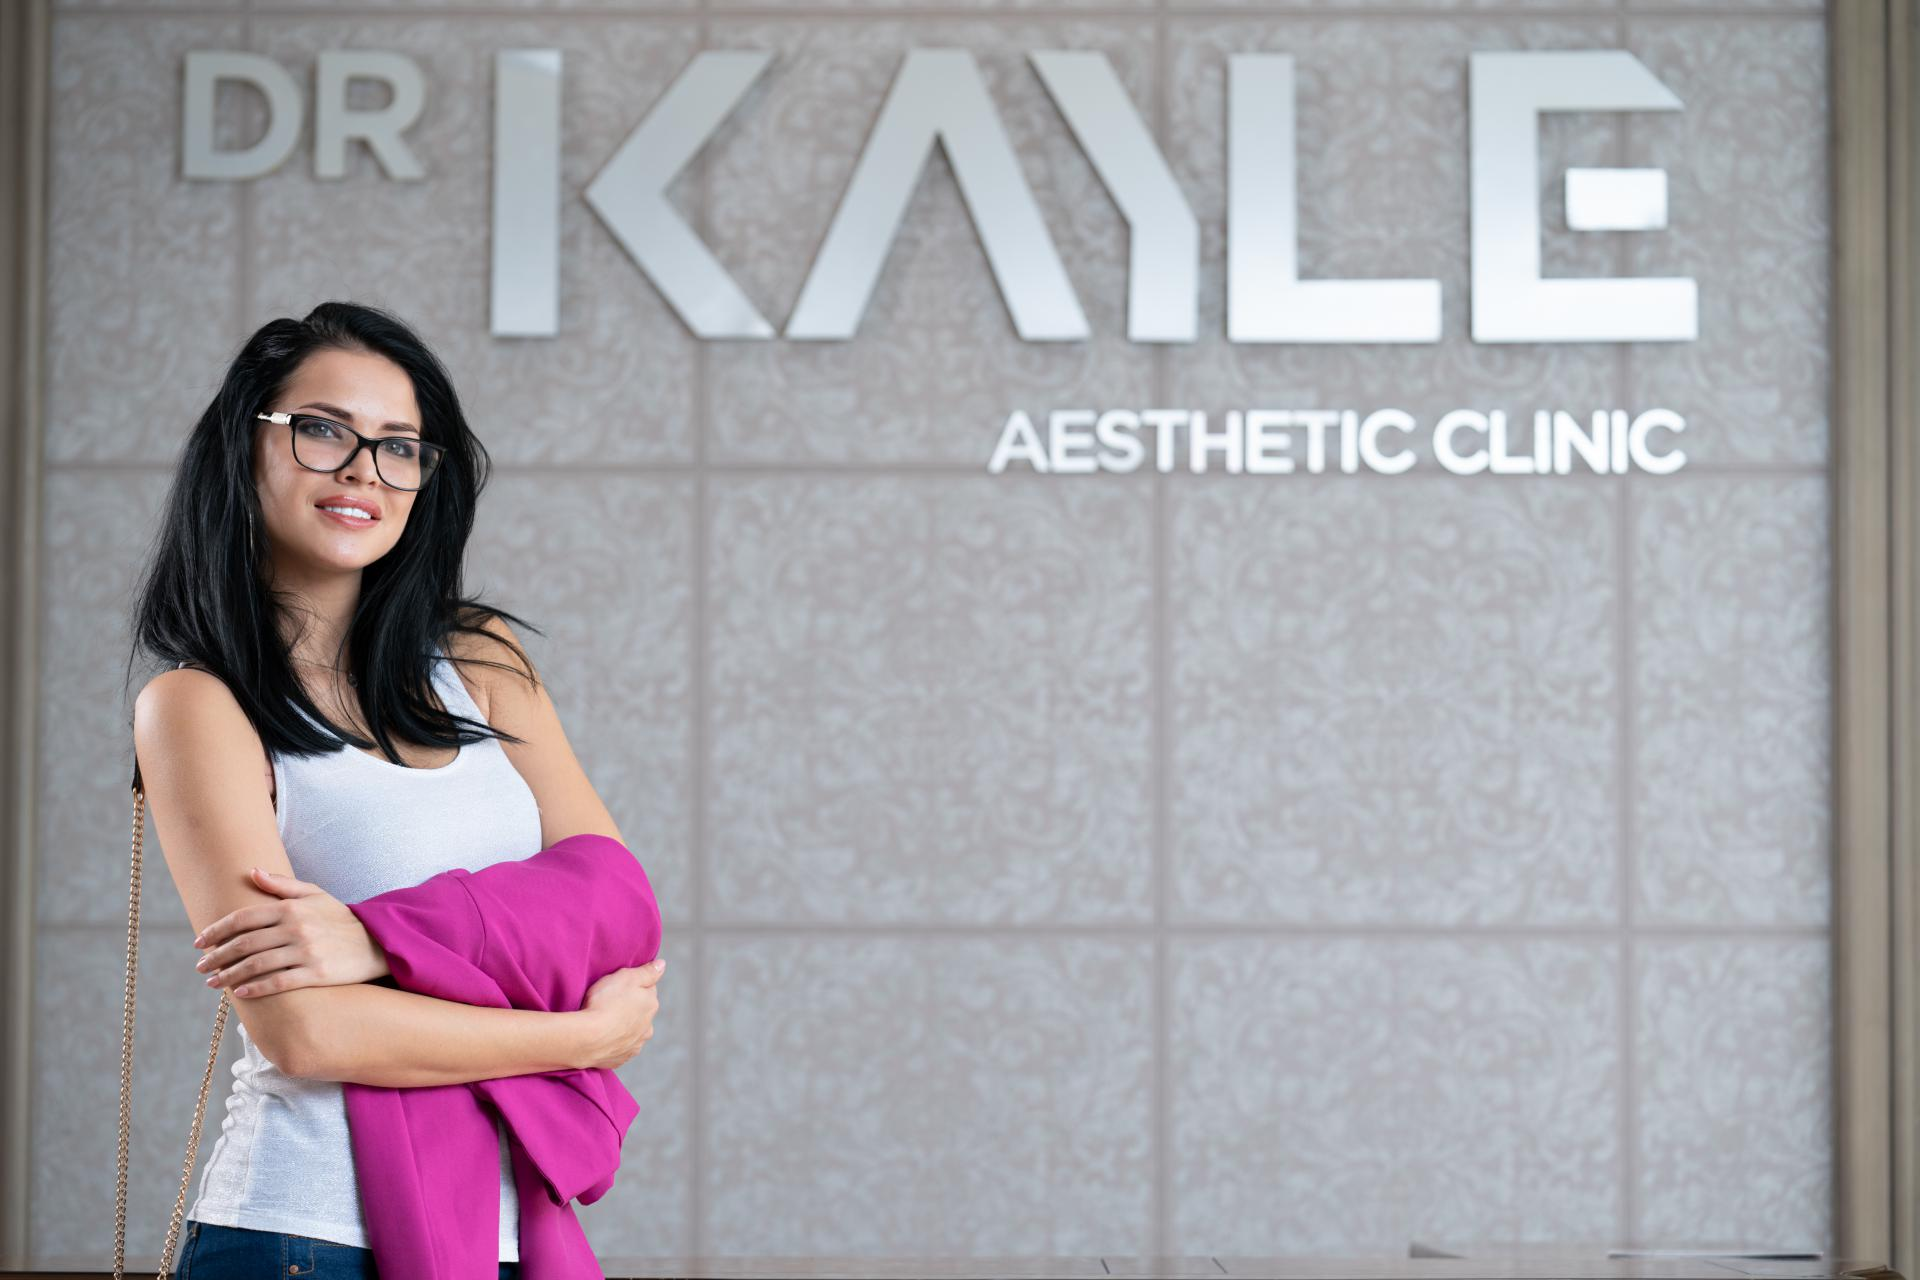 Best Cosmetic Plastic Surgery Clinic In Dubai Dr Kayle Aesthetic Clinic